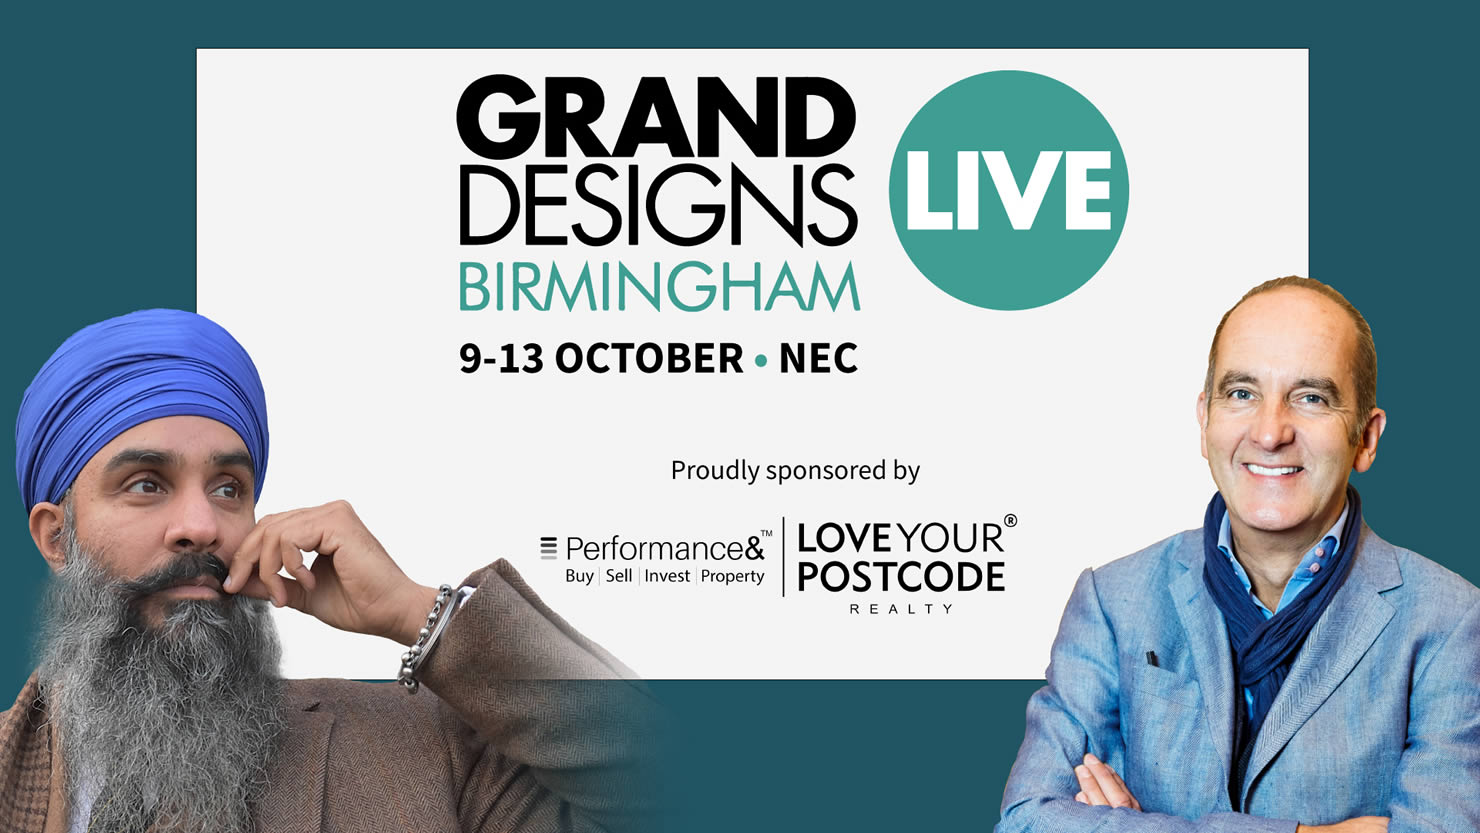 Great Designs Live